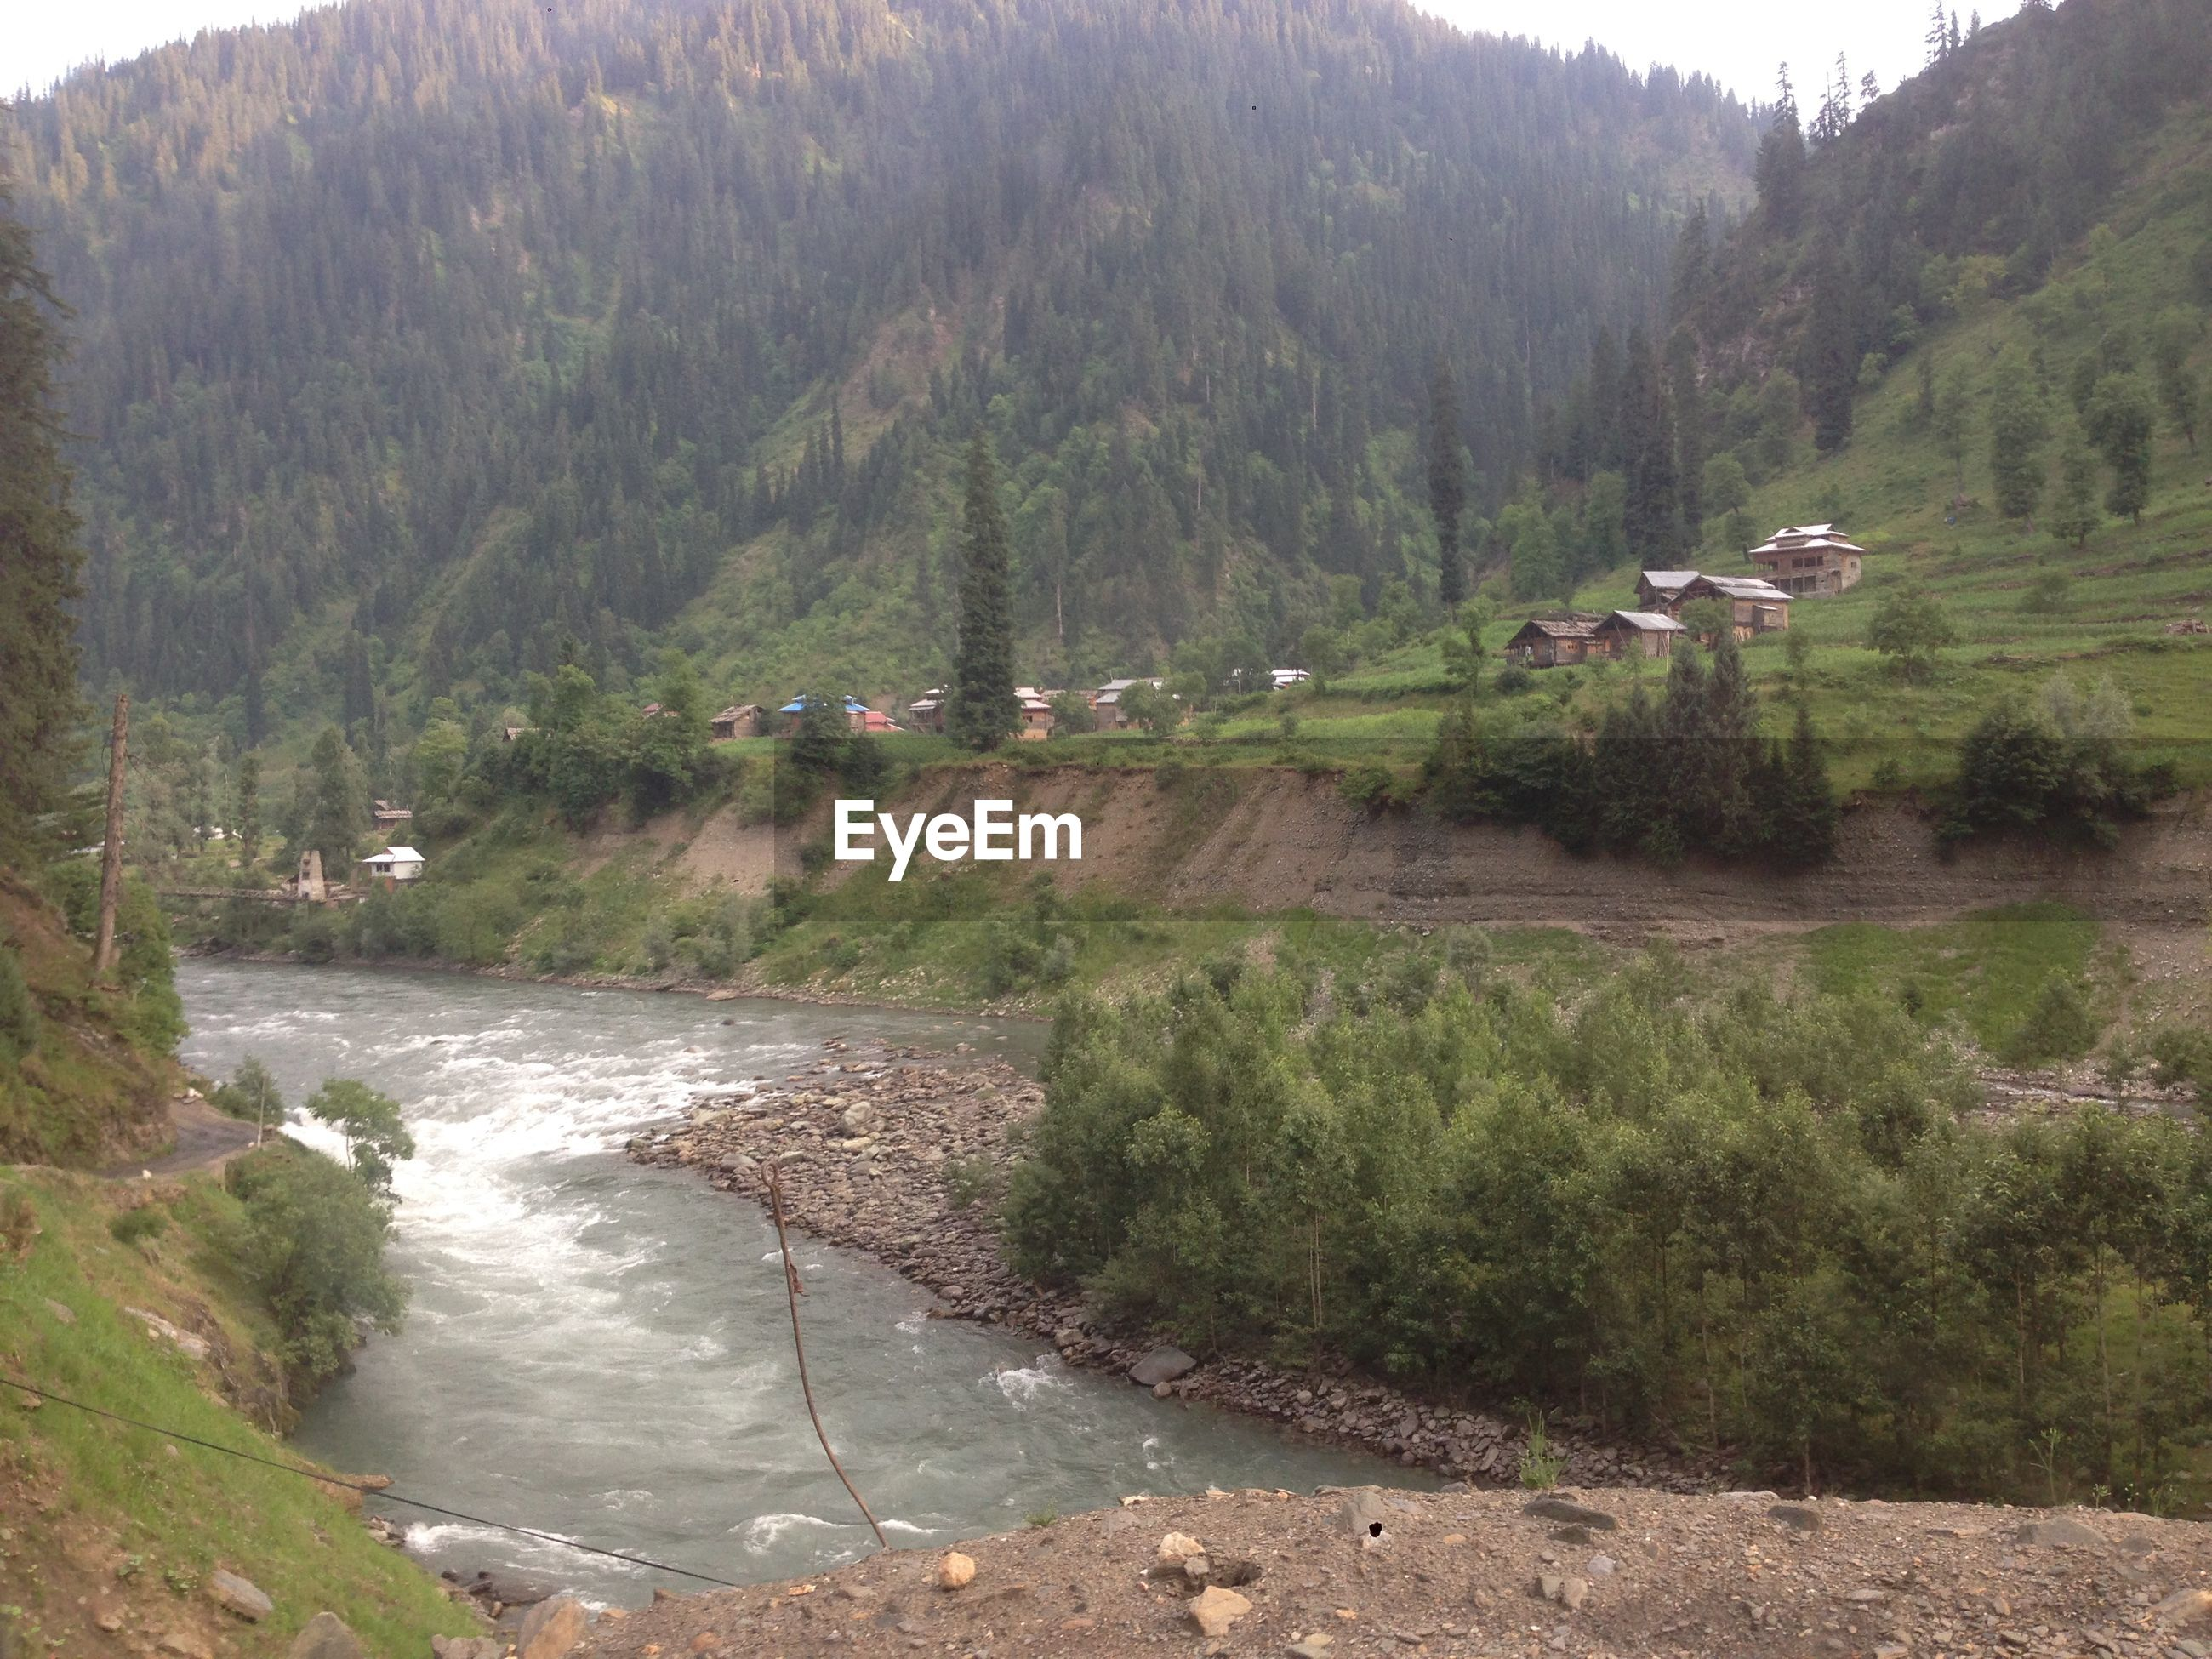 HIGH ANGLE VIEW OF RIVER FLOWING AMIDST TREES IN FOREST